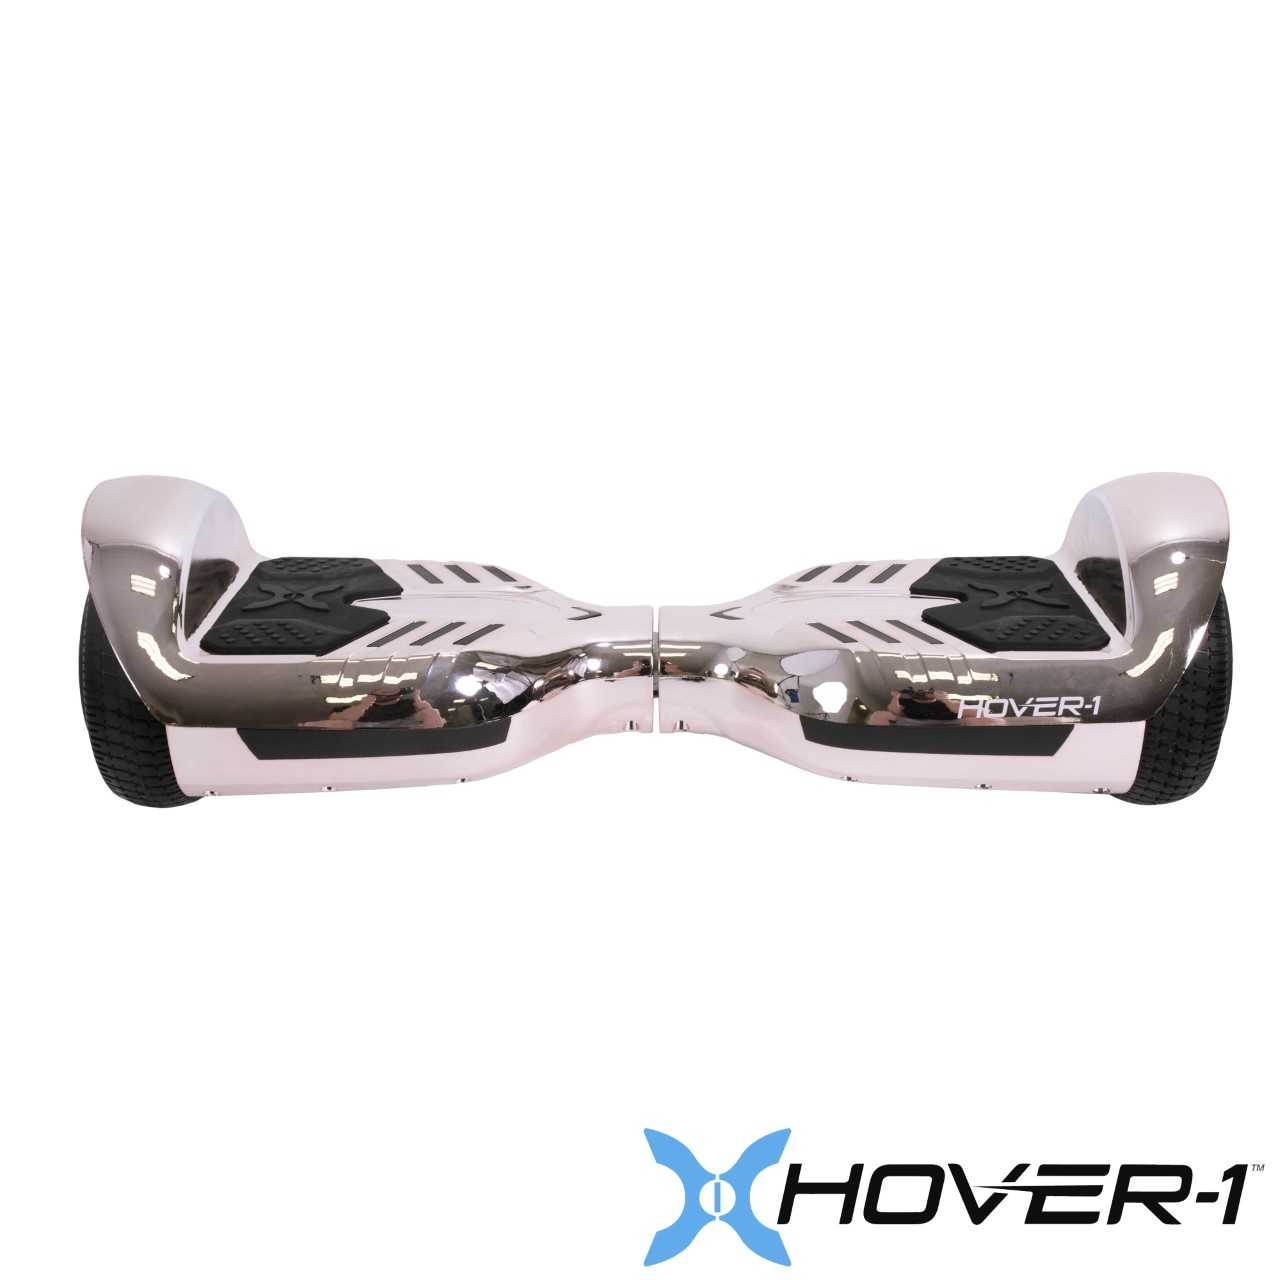 Hover 1 Superstar Electric Self Balancing Hoverboard with LED Lights, Bluetooth Speakers, and App Connectivity, Rose Gold